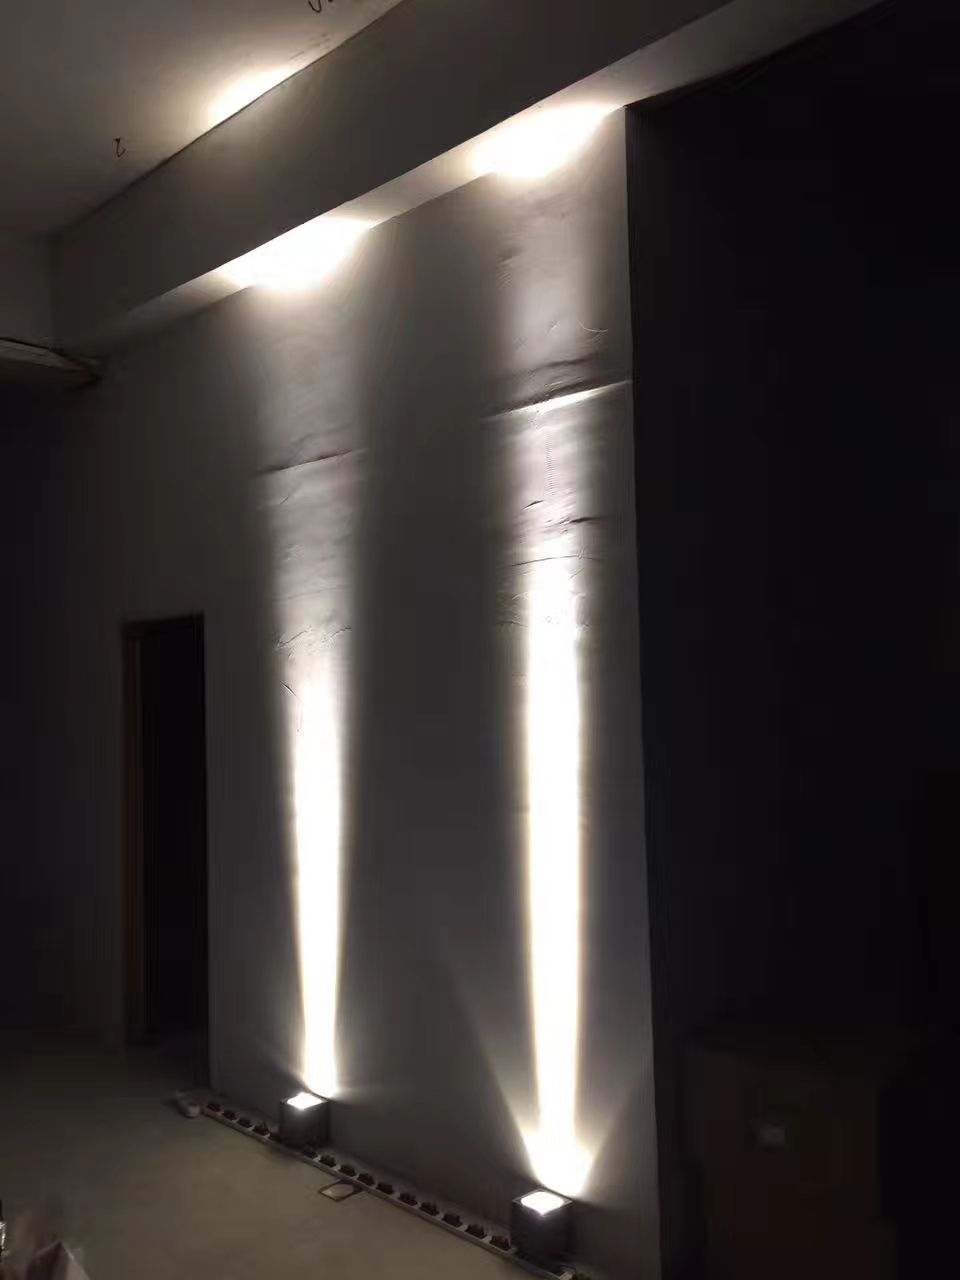 TG series|Wall Washer LED.GLLL TG series are one of our more powerful light fixtures and can project light up to 65ft. These LED Wall Washers can be used in any indoor or outdoor lighting project.(can redesign and produce as custom needs)